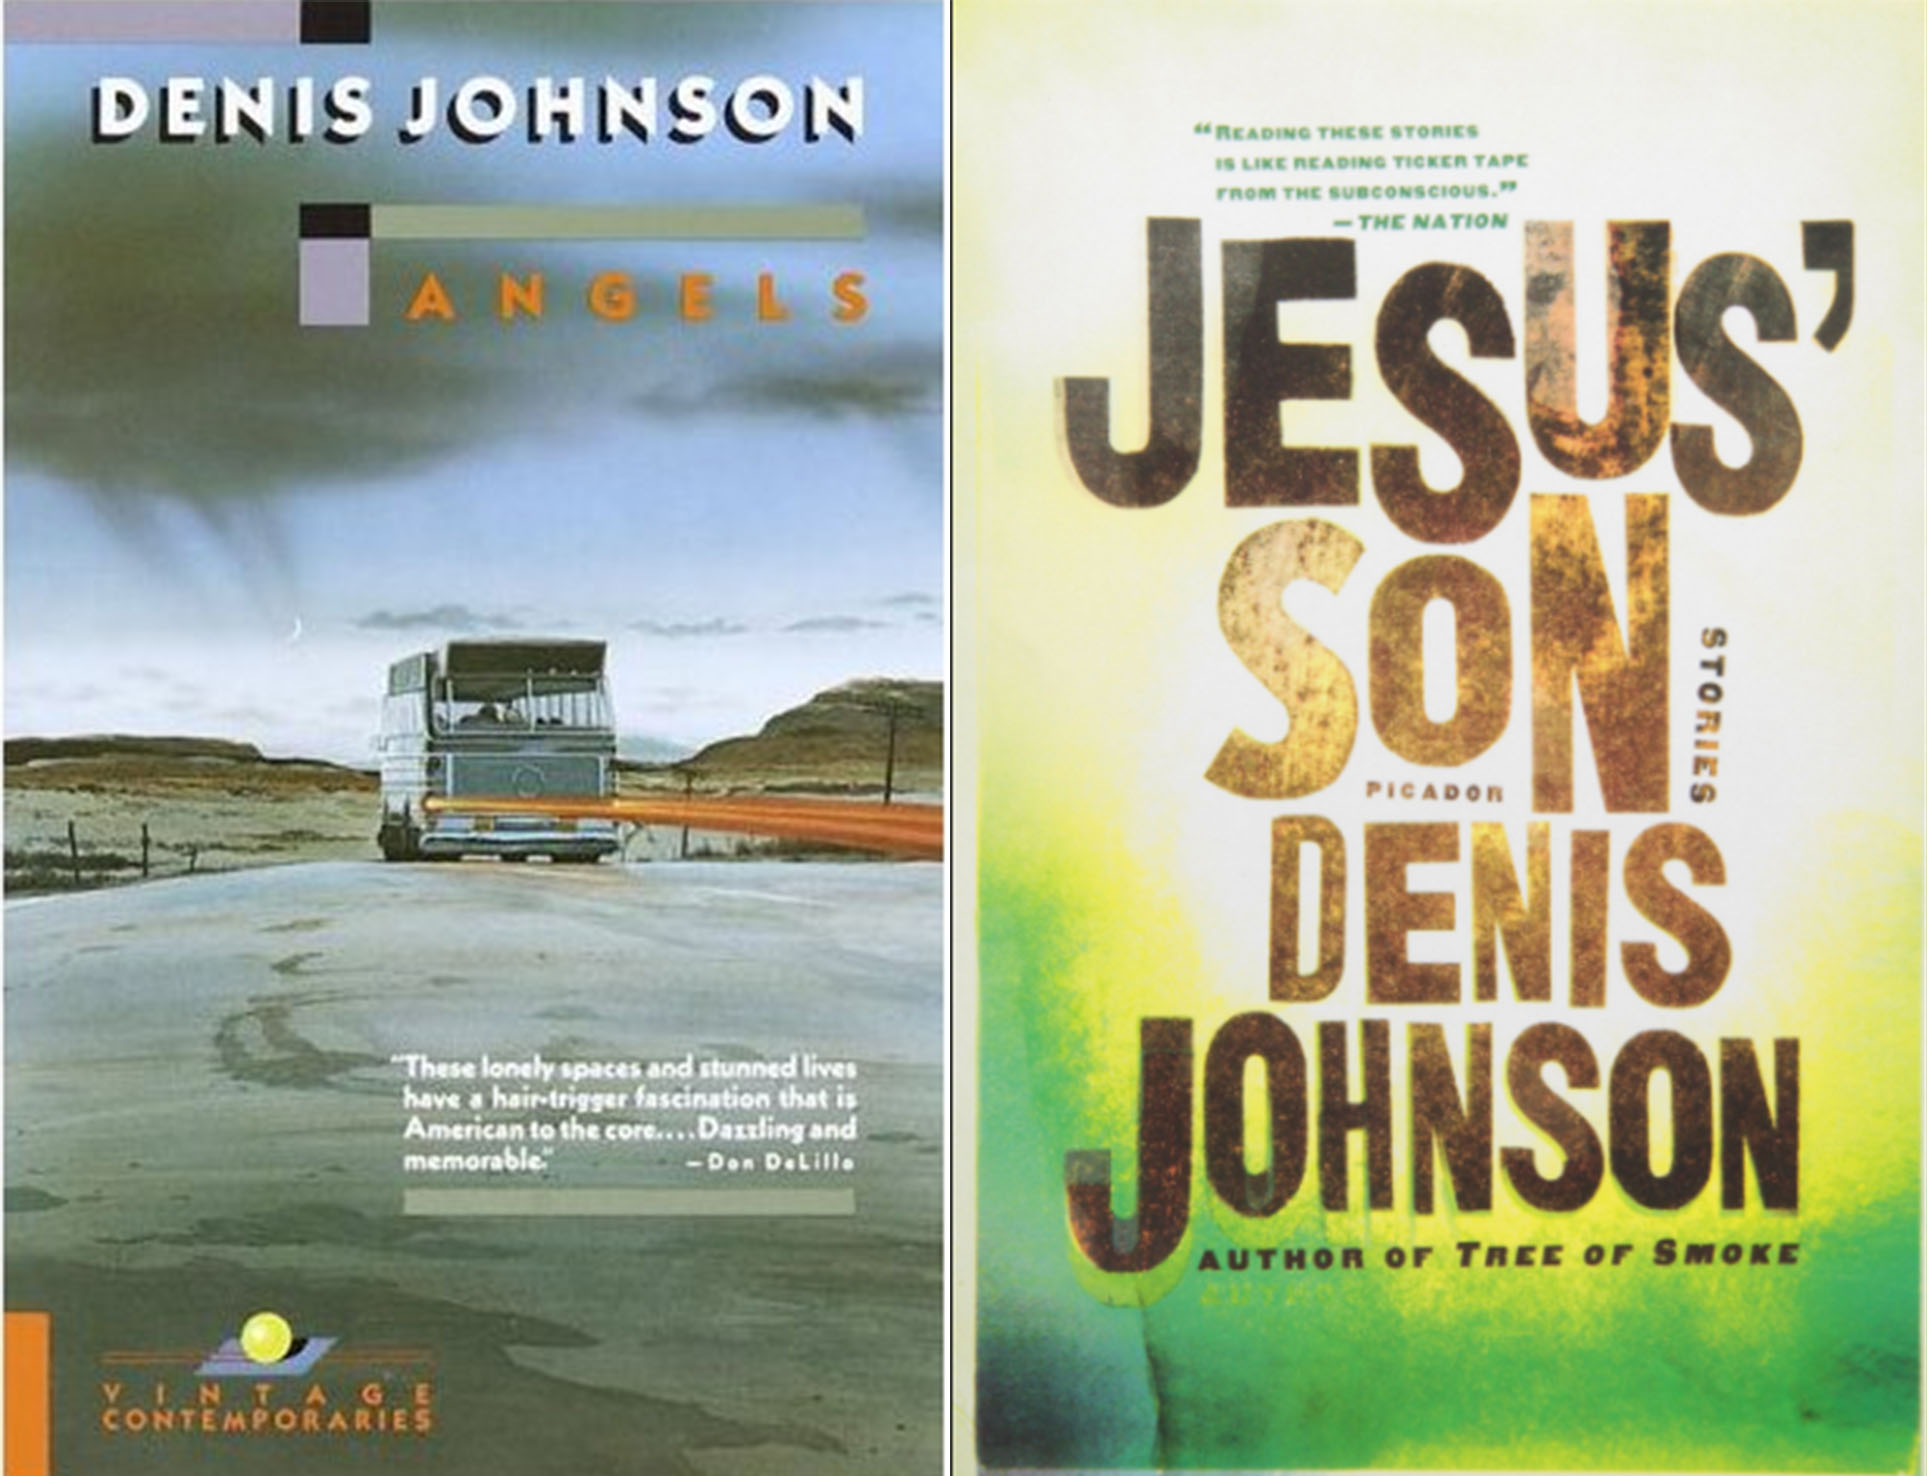 Denis Johnson novella covers